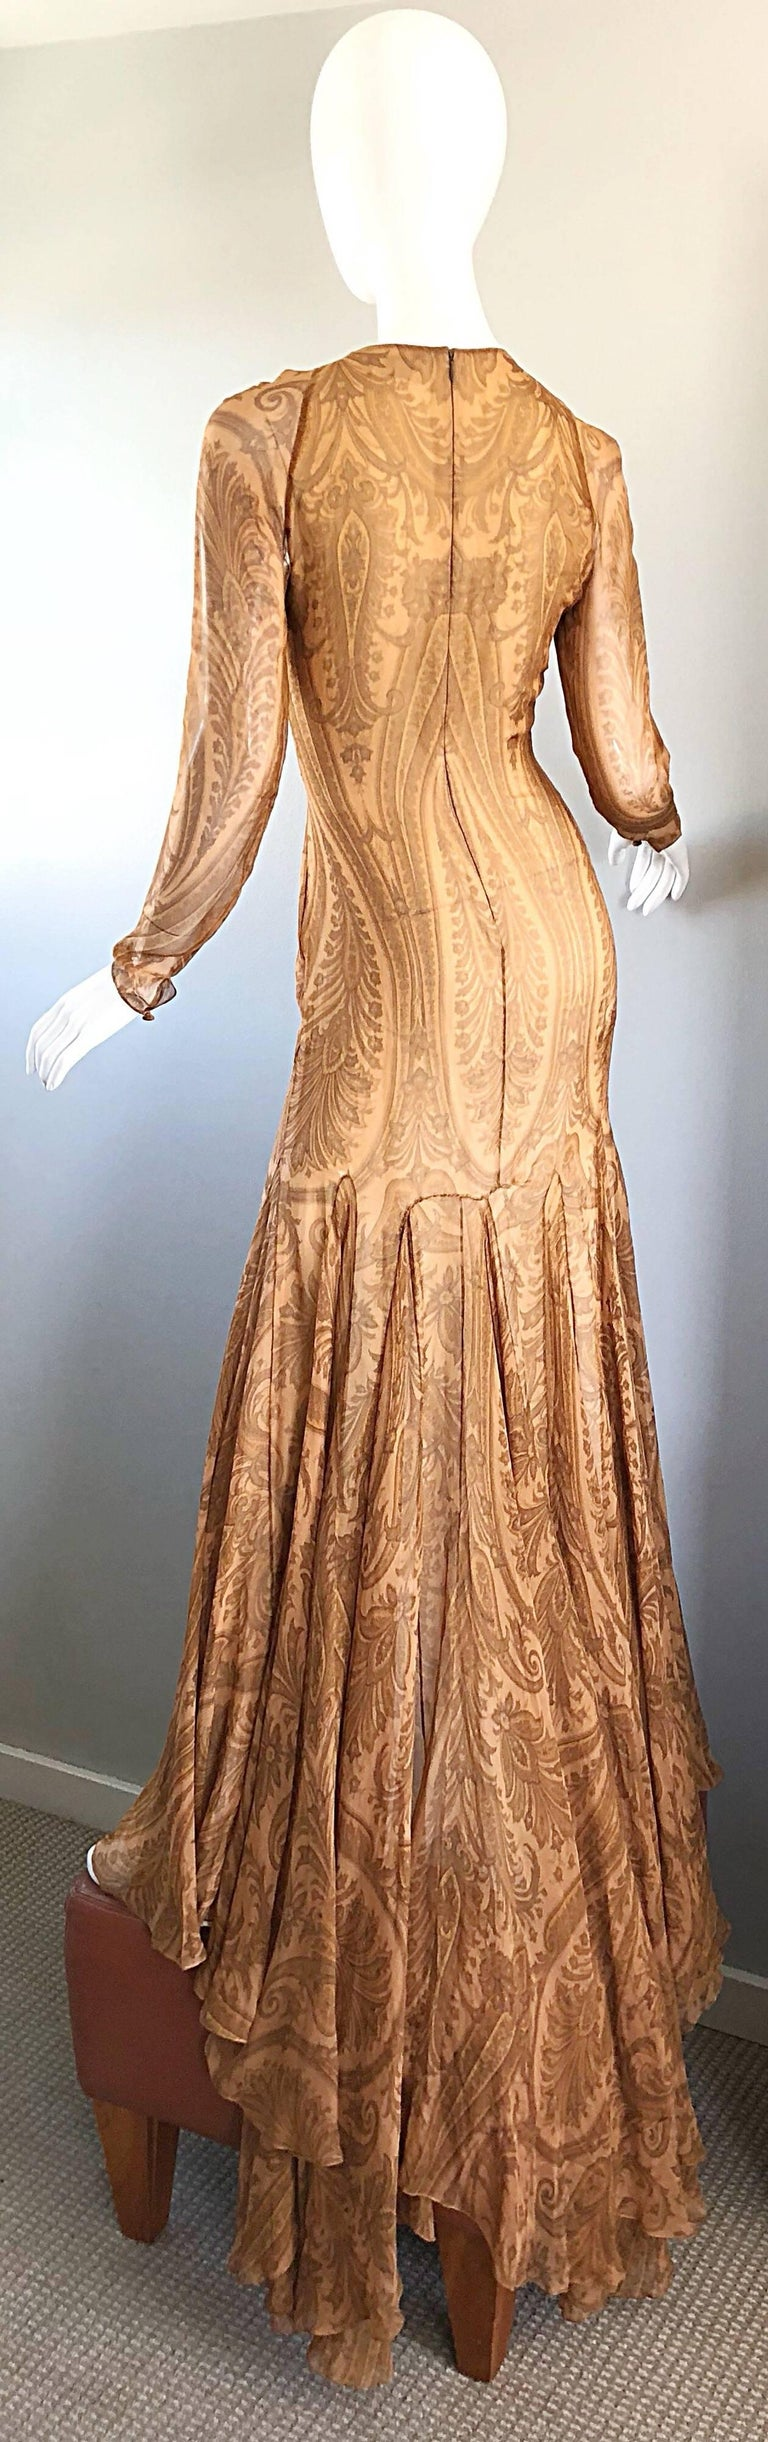 Sensational 1990s Bill Blass Couture Nude Silk Chiffon Paisley Vintage 90s Gown  For Sale 9